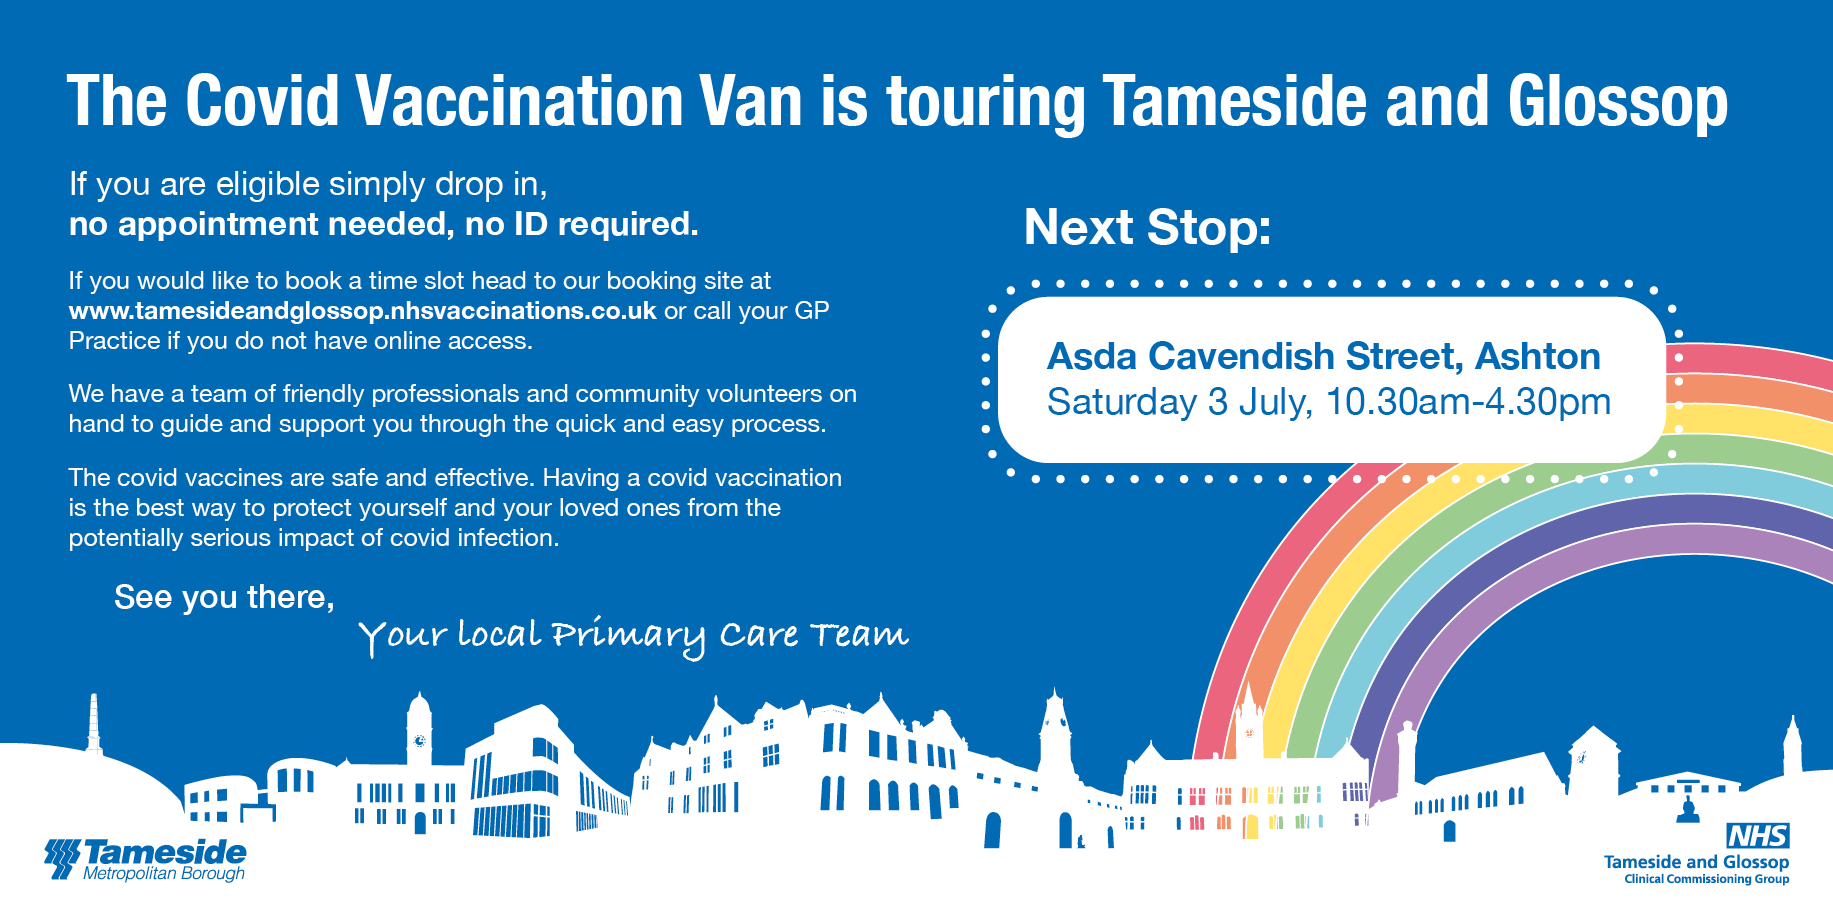 banner reading the covid vaccination an is touring tamside and glossop